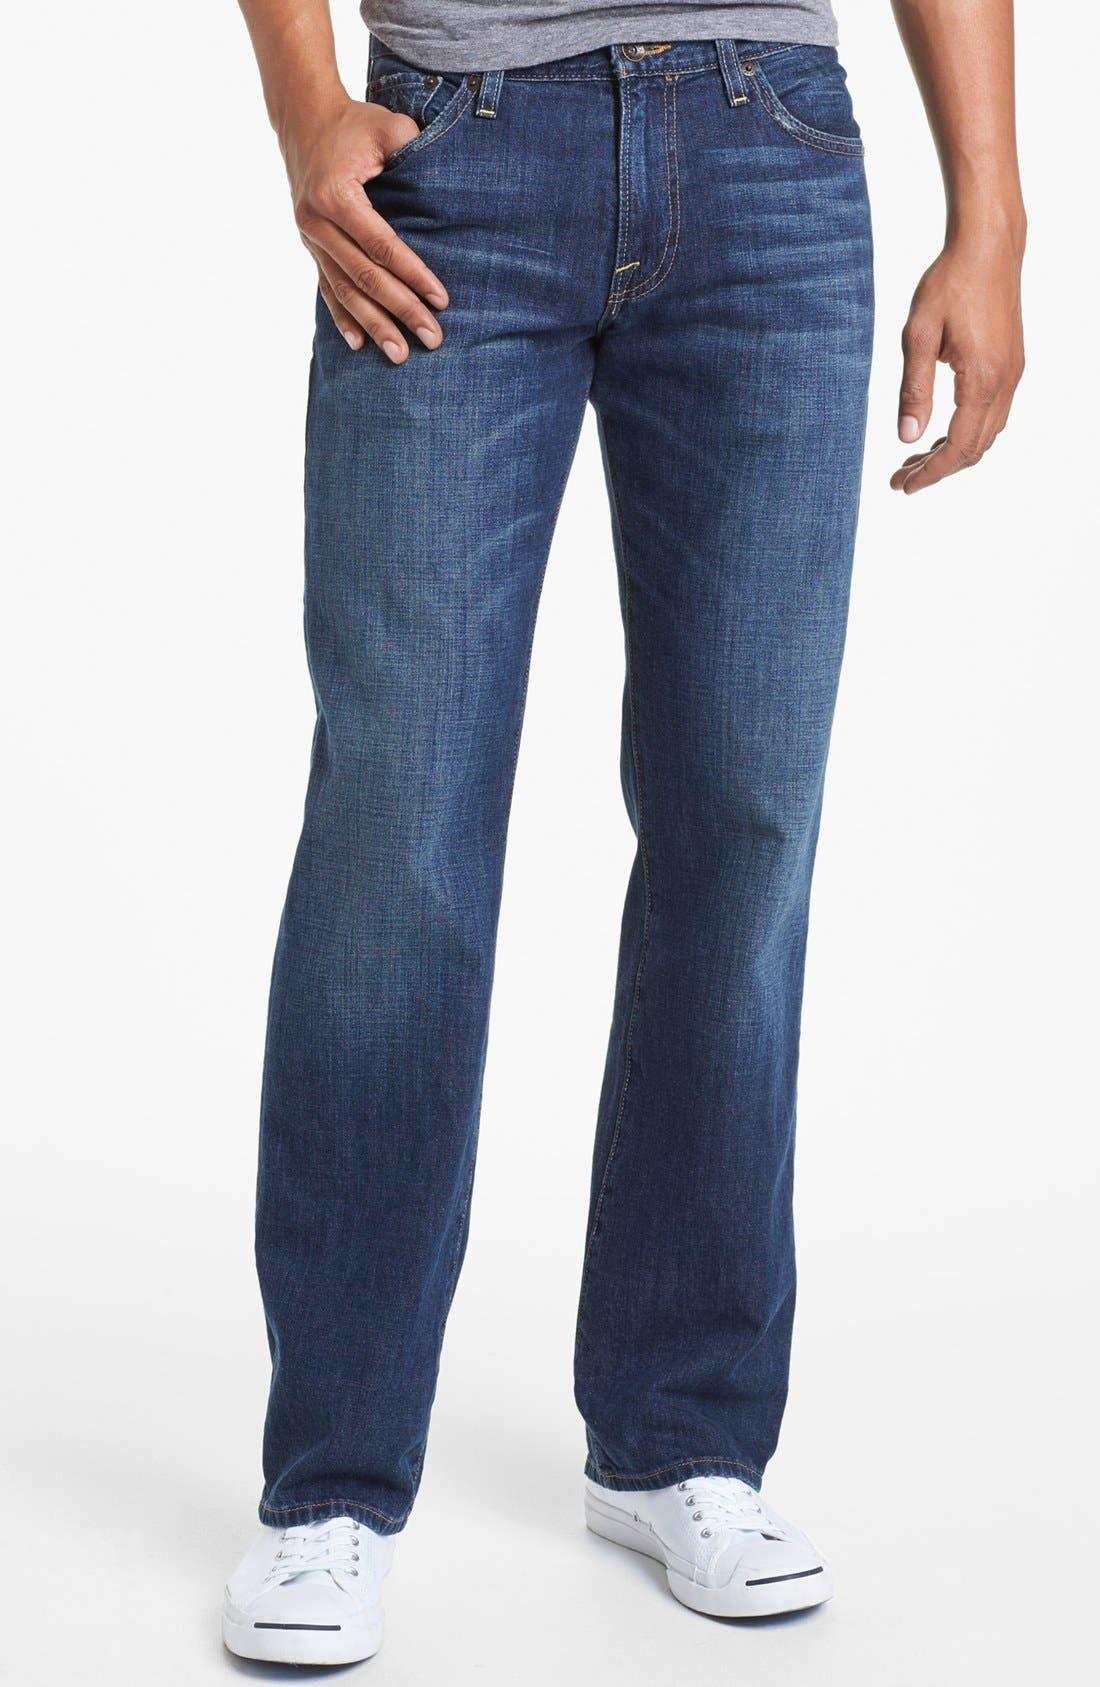 Alternate Image 1 Selected - Lucky Brand '361 Vintage' Straight Leg Jeans